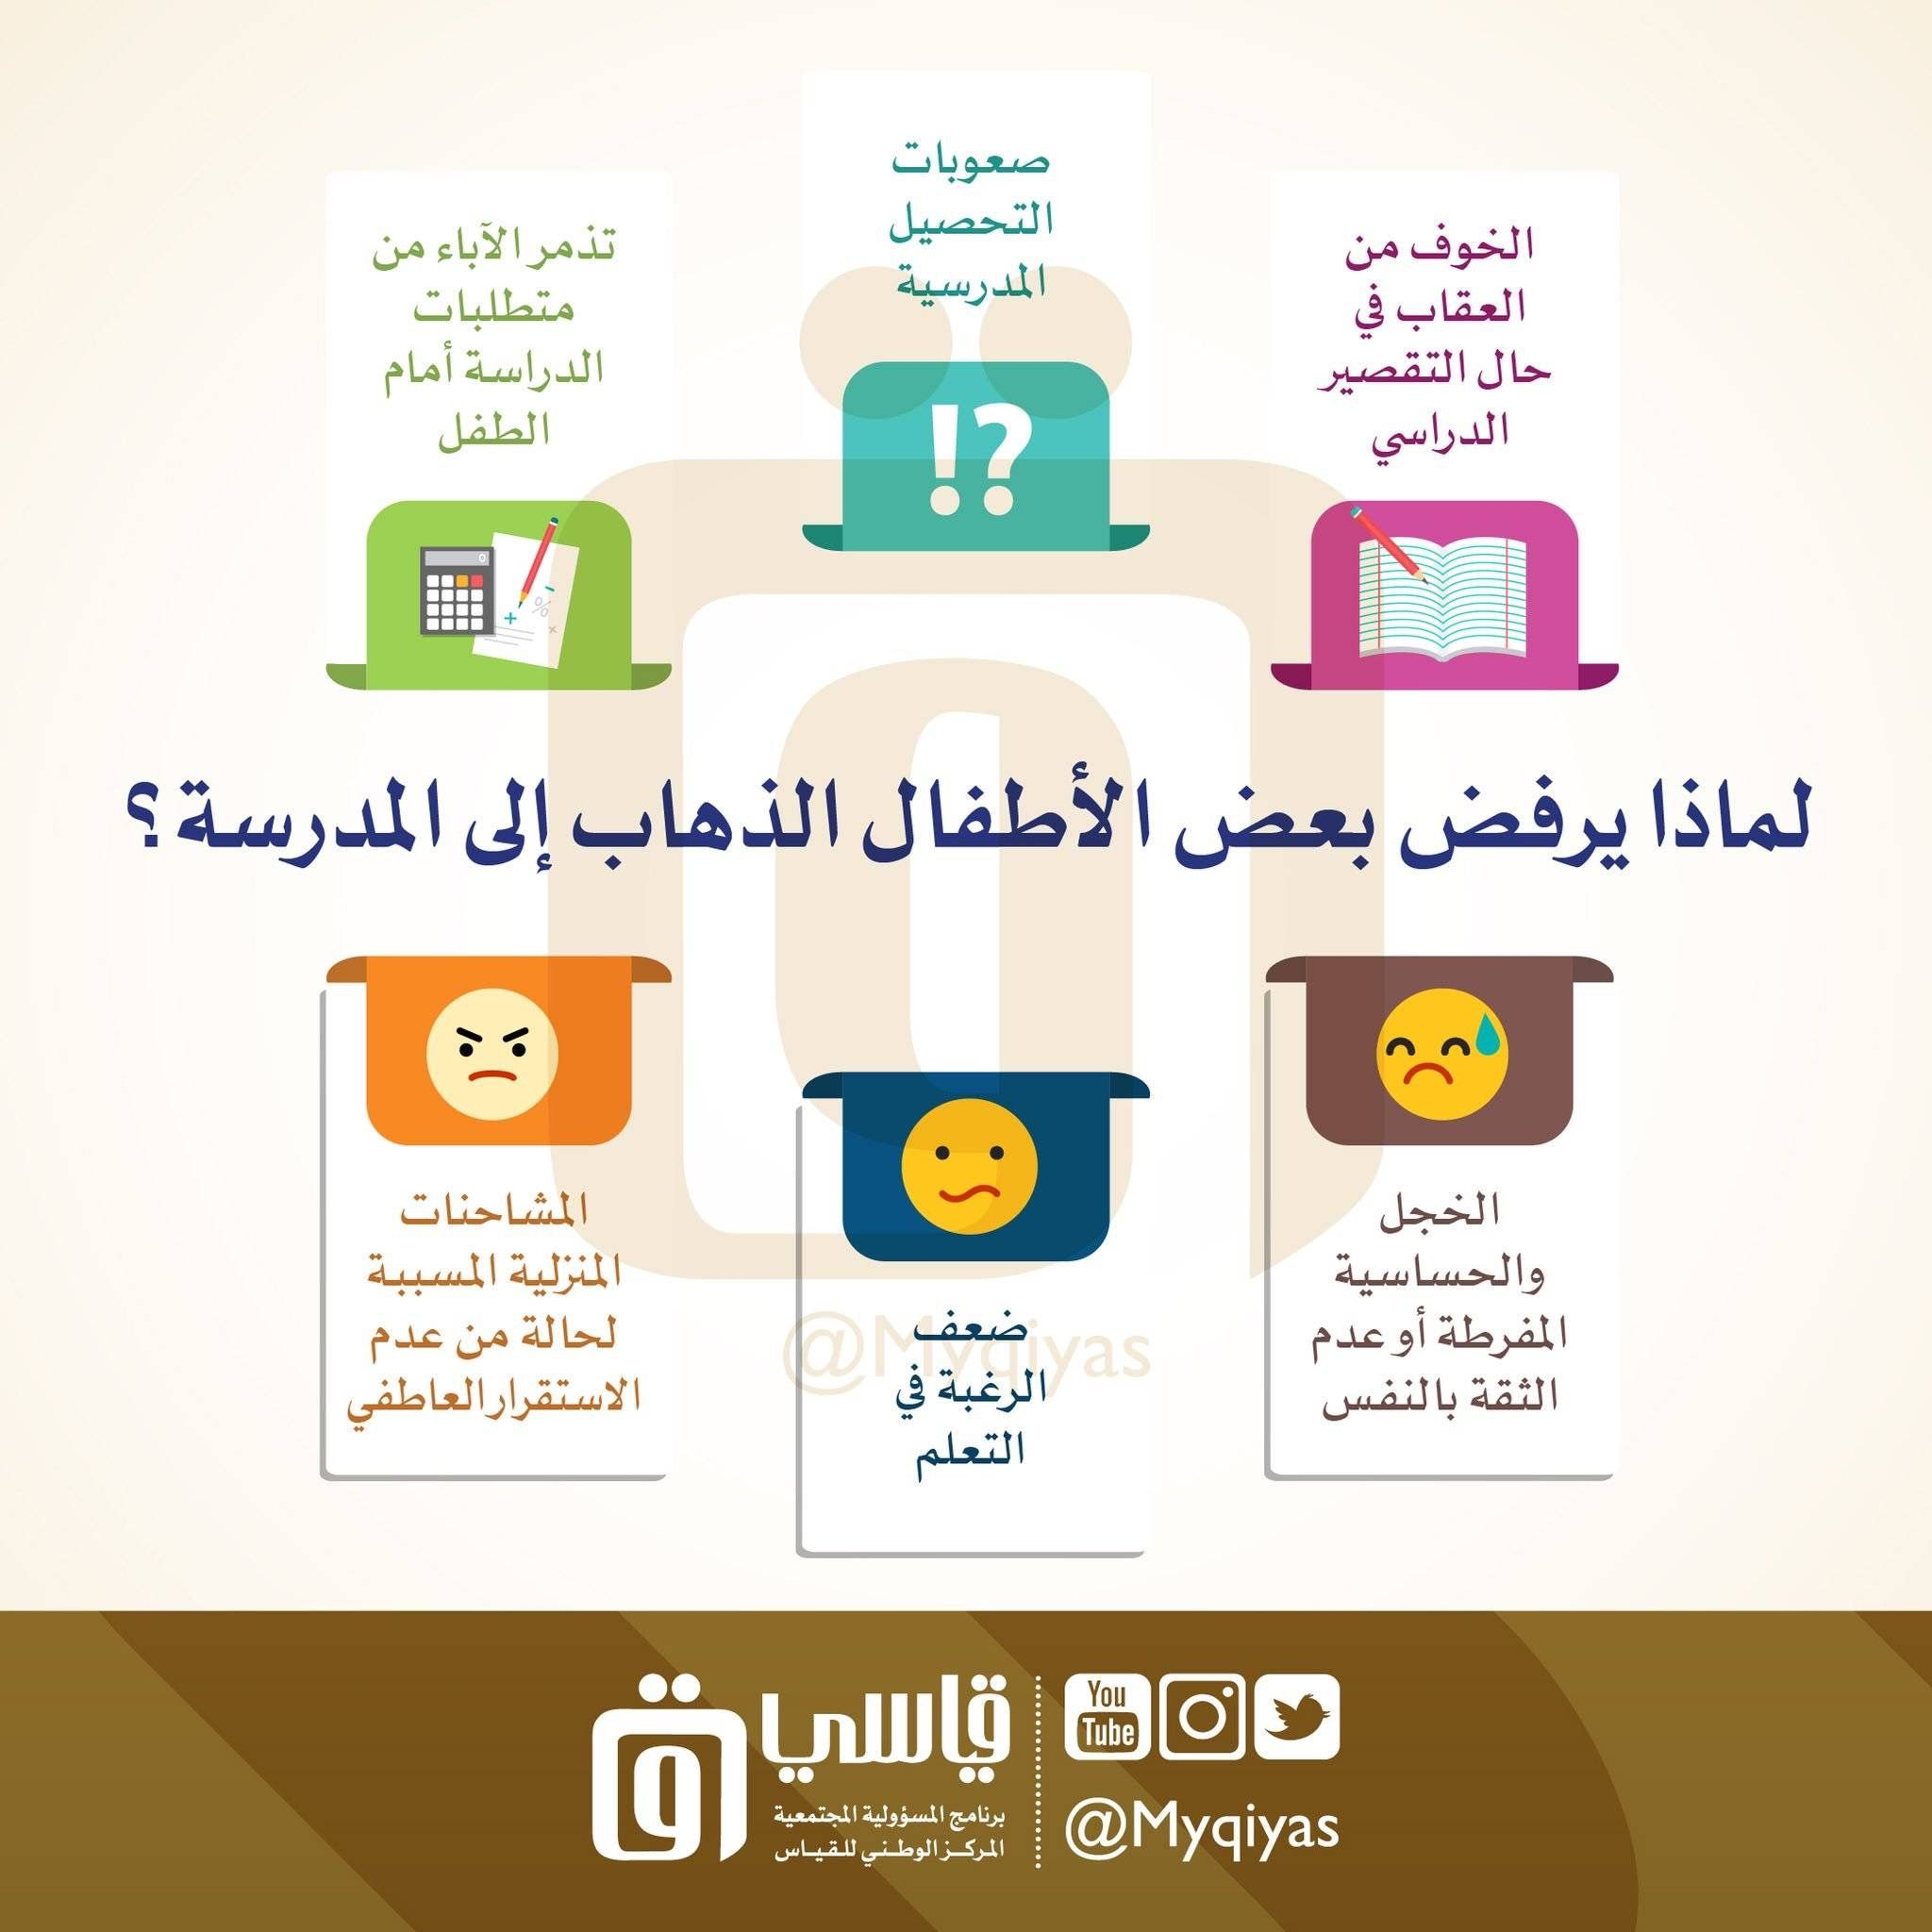 Pin By Ali On تطوير الذات Kids And Parenting Parenting Kids